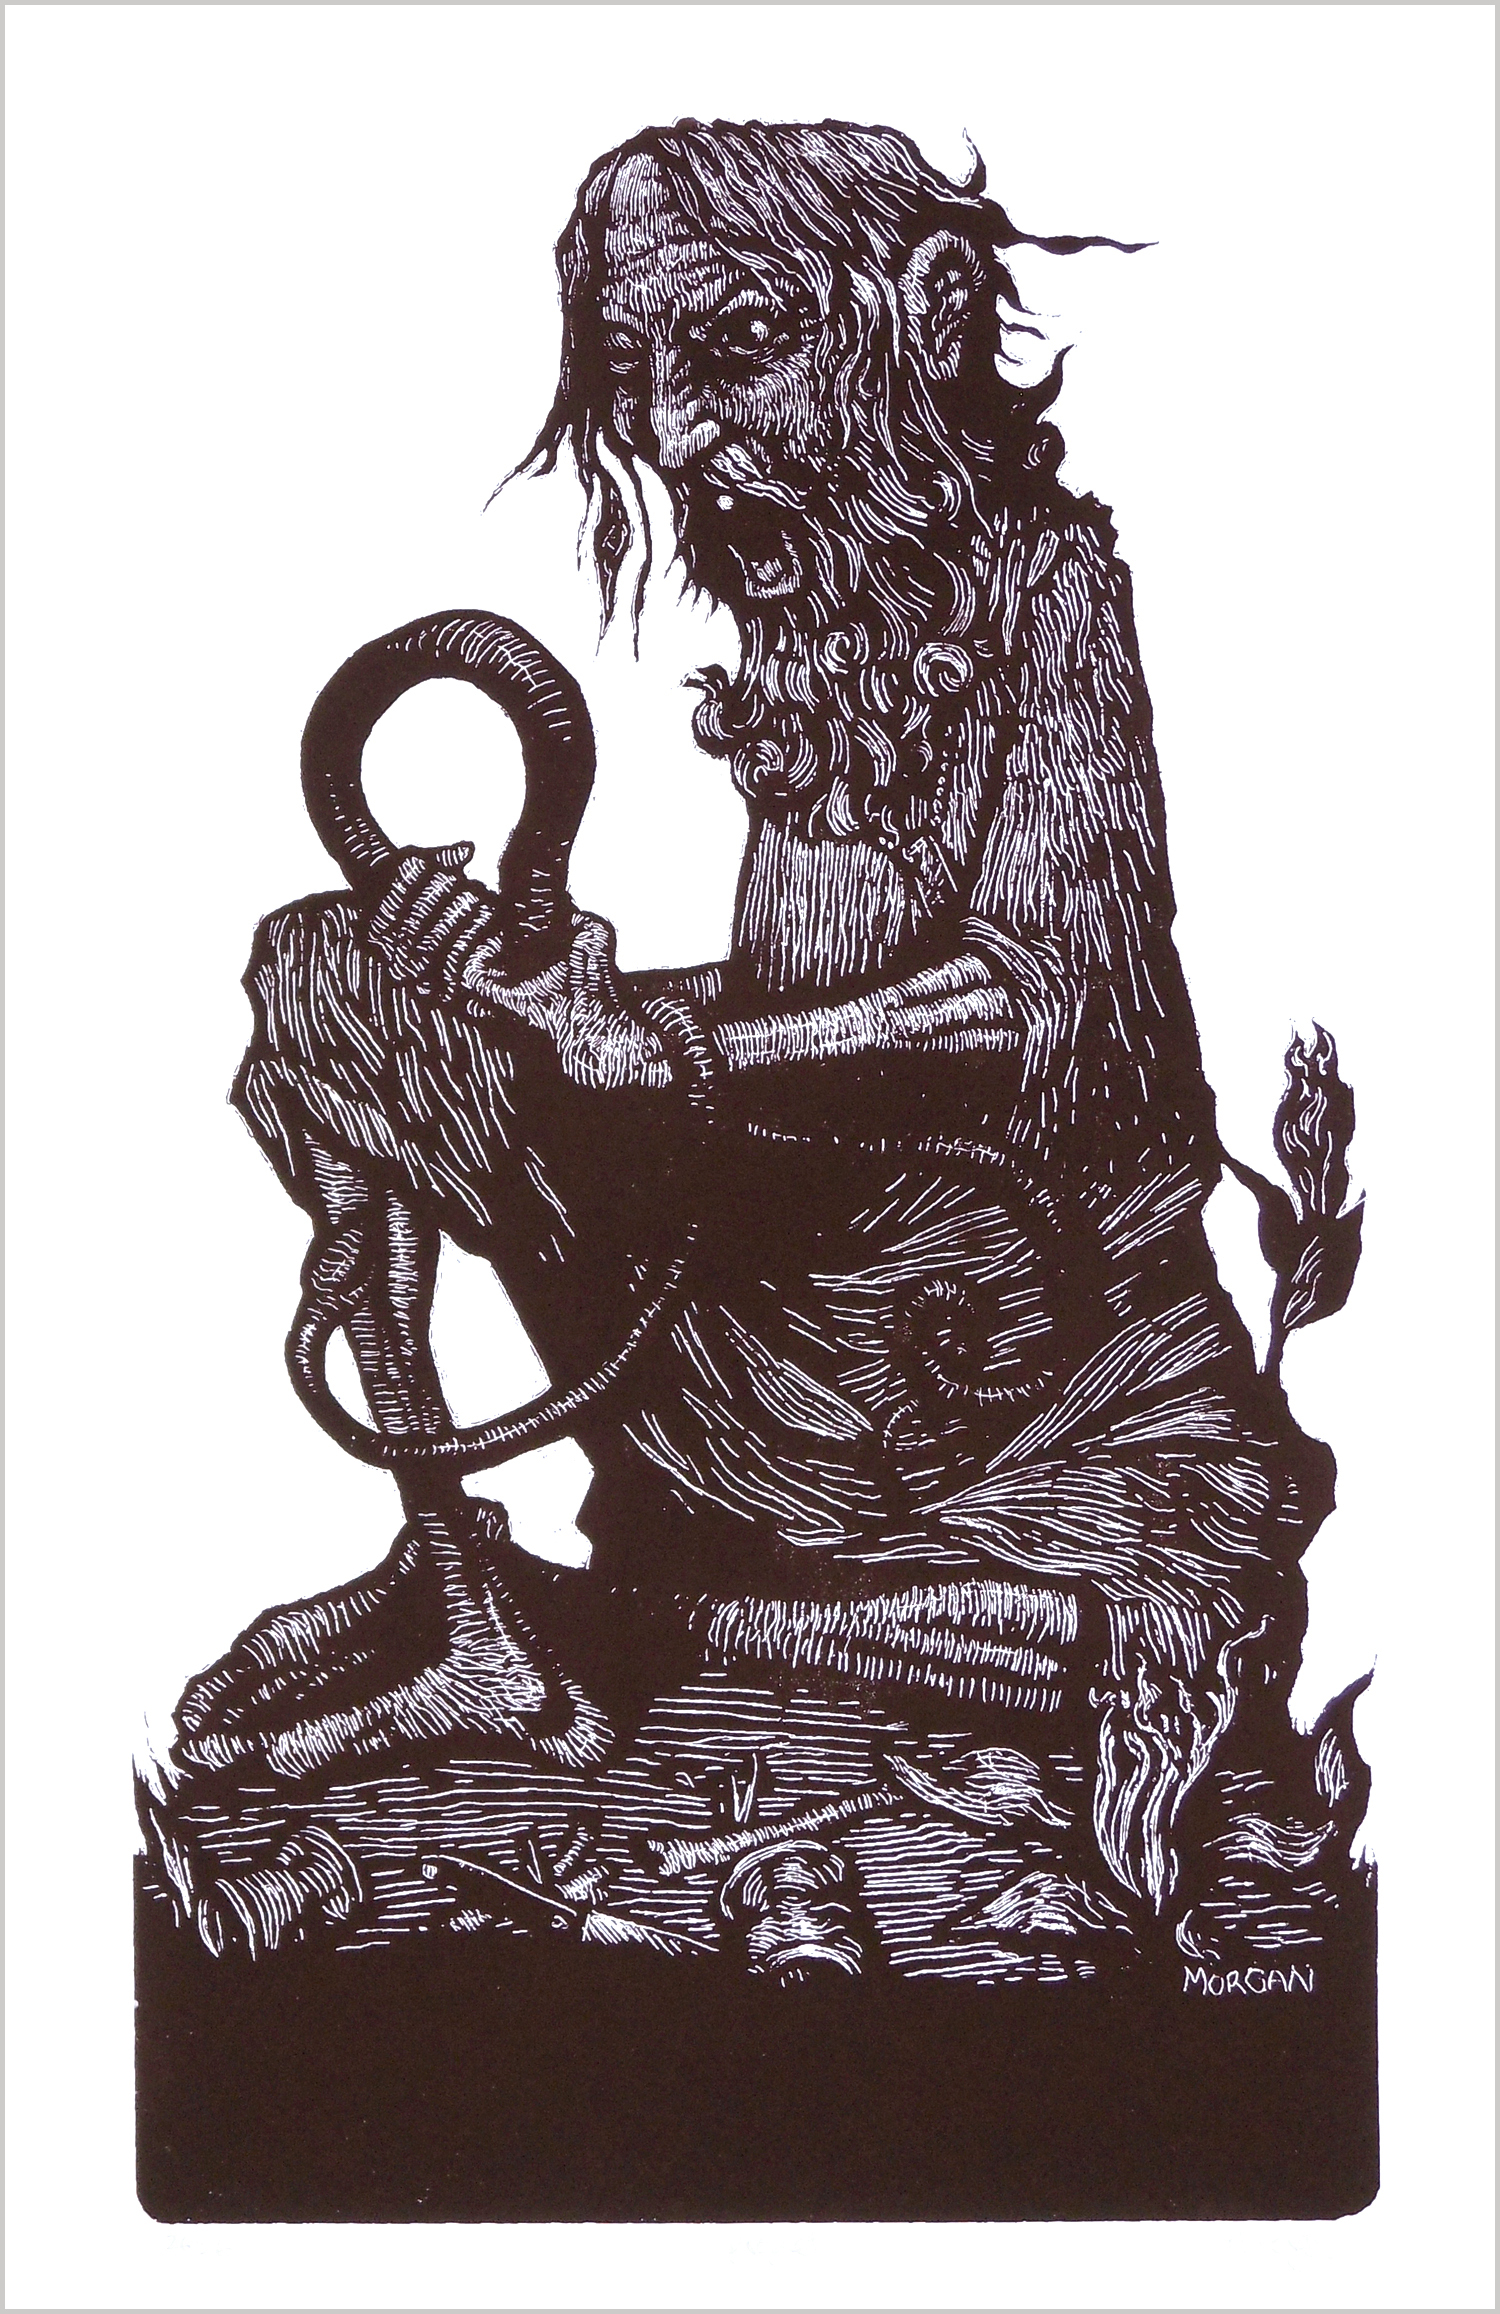 Prophet screenprint Throwing Bones snake